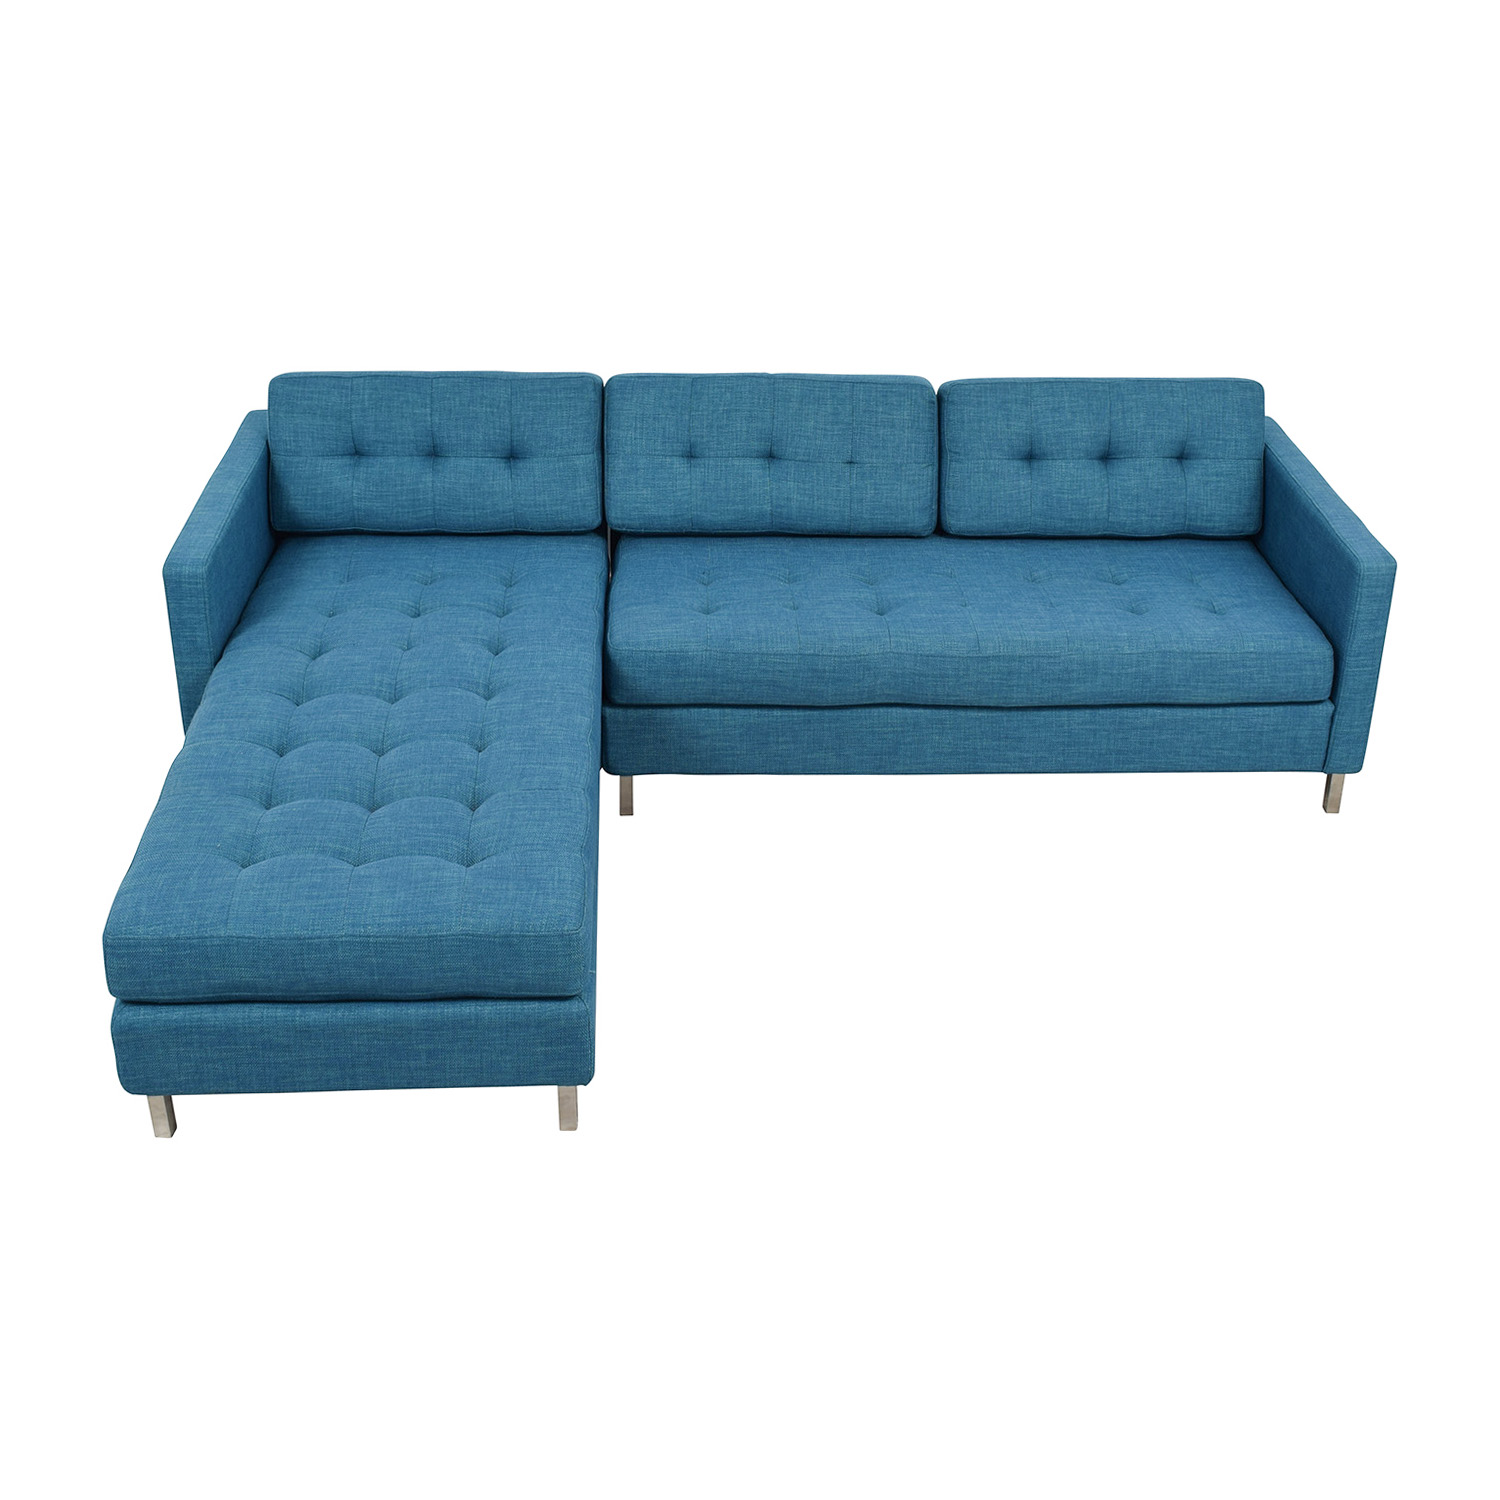 CB2 CB2 Ditto II Peacock Sectional Sofa on sale